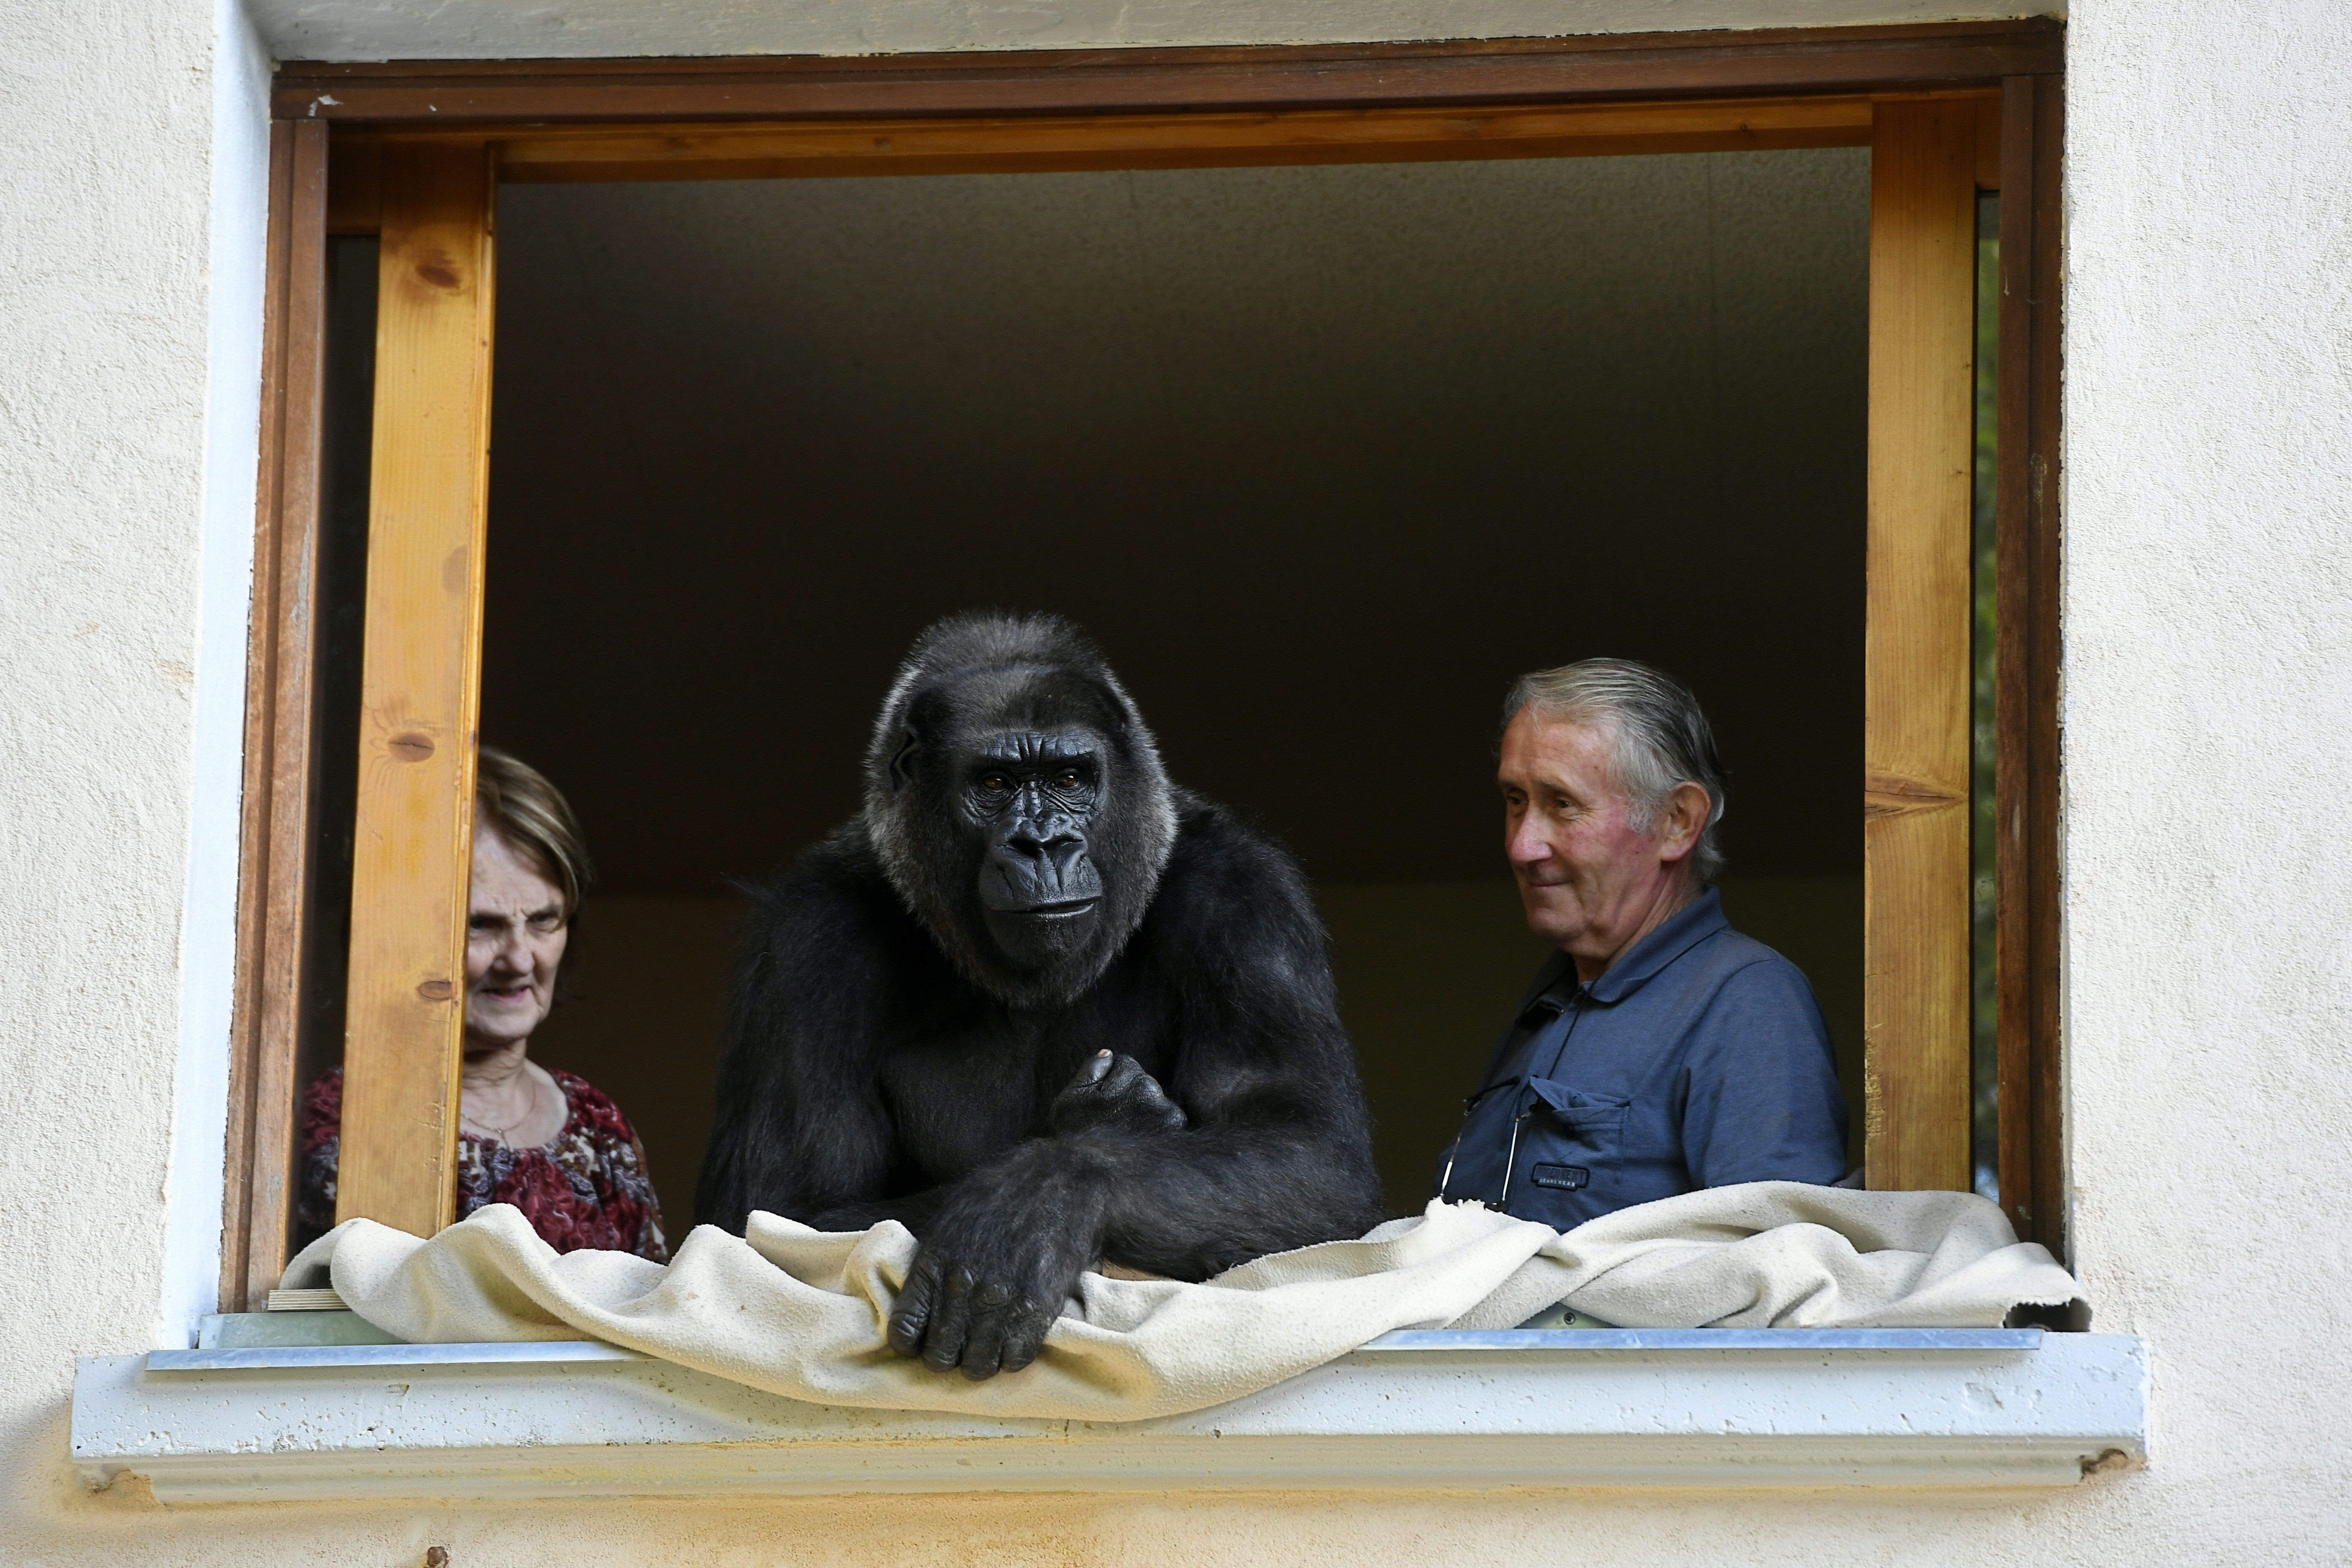 Pierre Thivillon, right, director of the zoological park of Saint-Martin-La-Plaine and his wife Eliane look at Digit, an 18-year-old female gorilla in Saint-Martin-La-Plaine,  France, on Aug. 19, 2016.